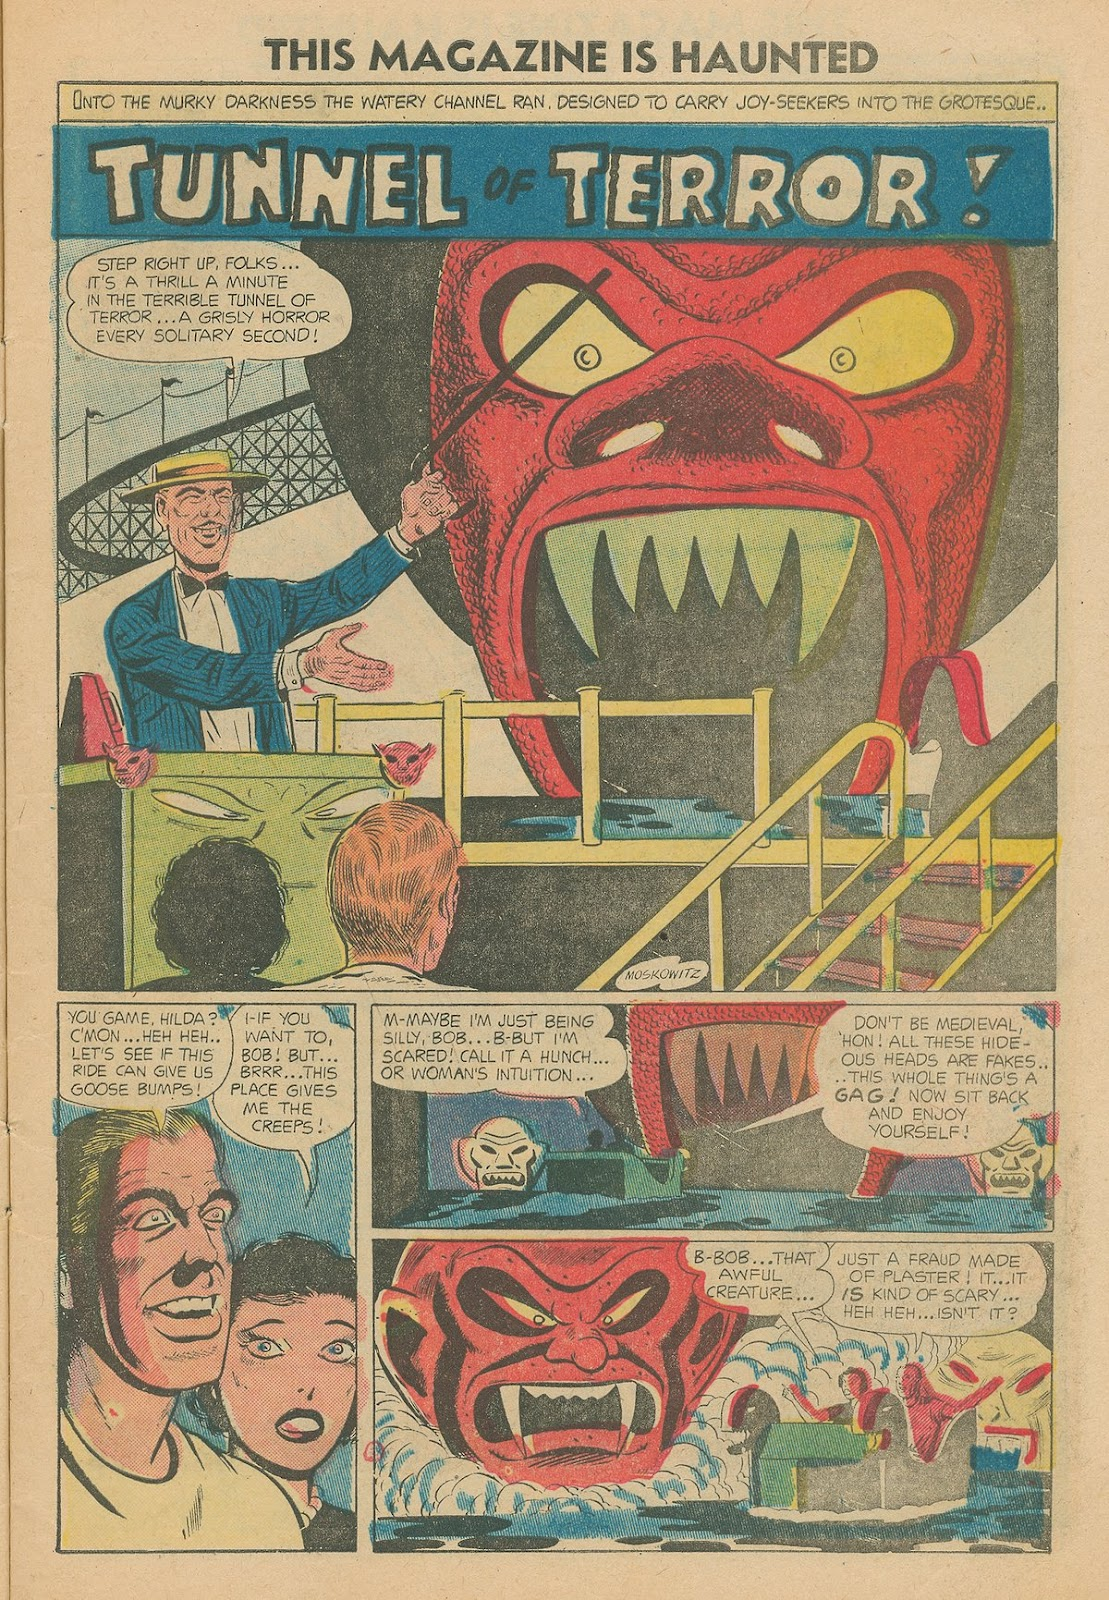 Read online This Magazine Is Haunted comic -  Issue #21 - 7